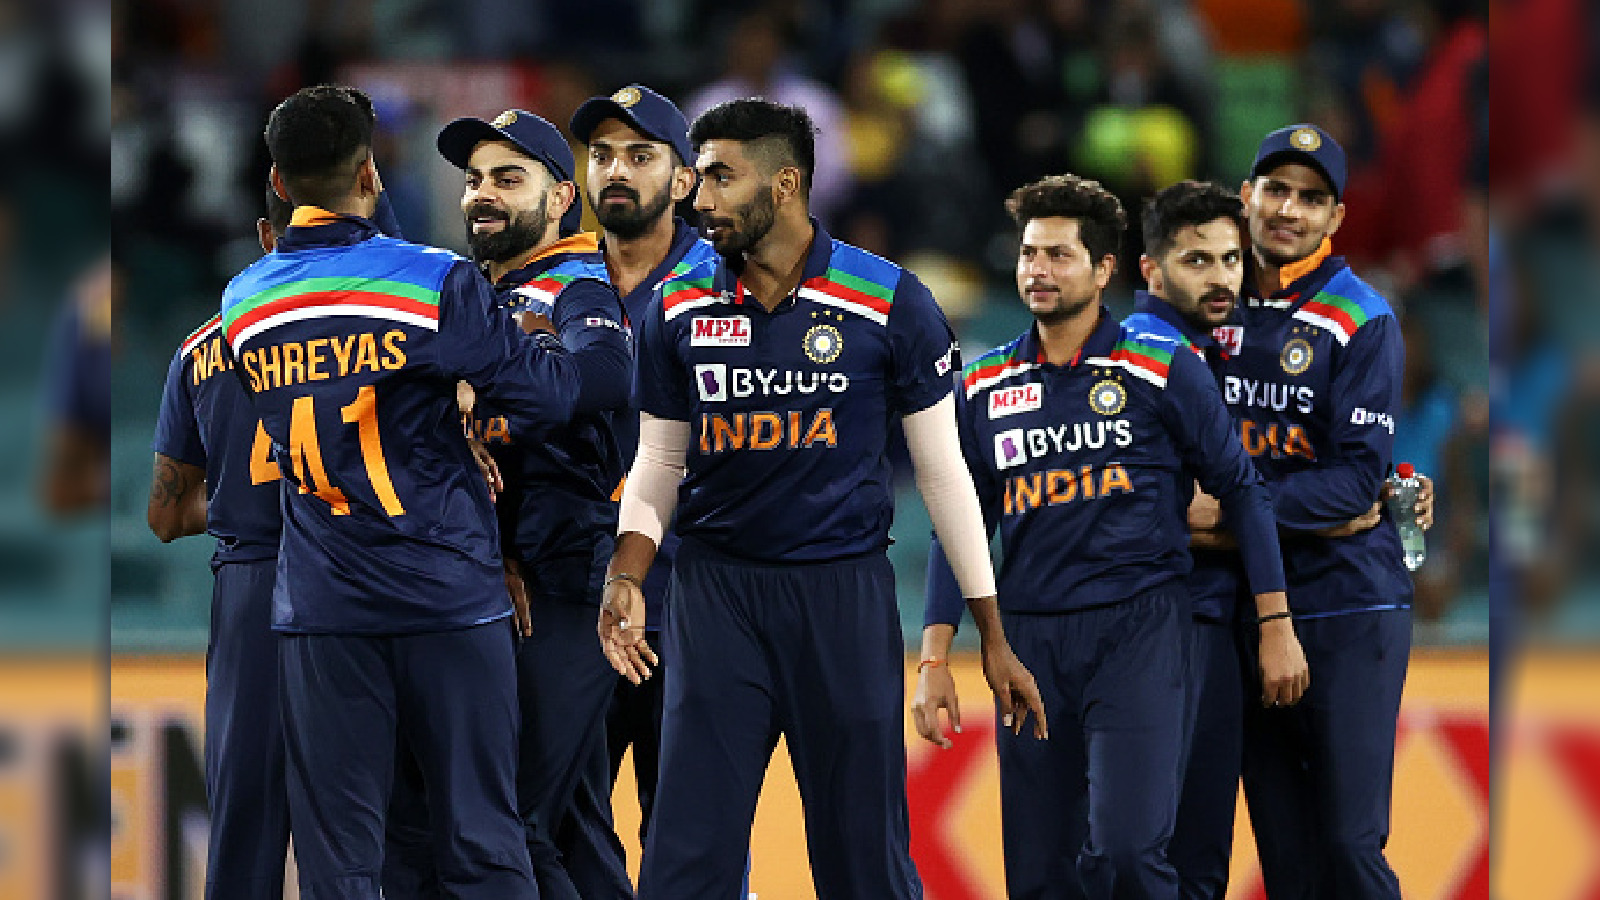 BCCI Unveils Team India's Jersey For The Upcoming World Cup